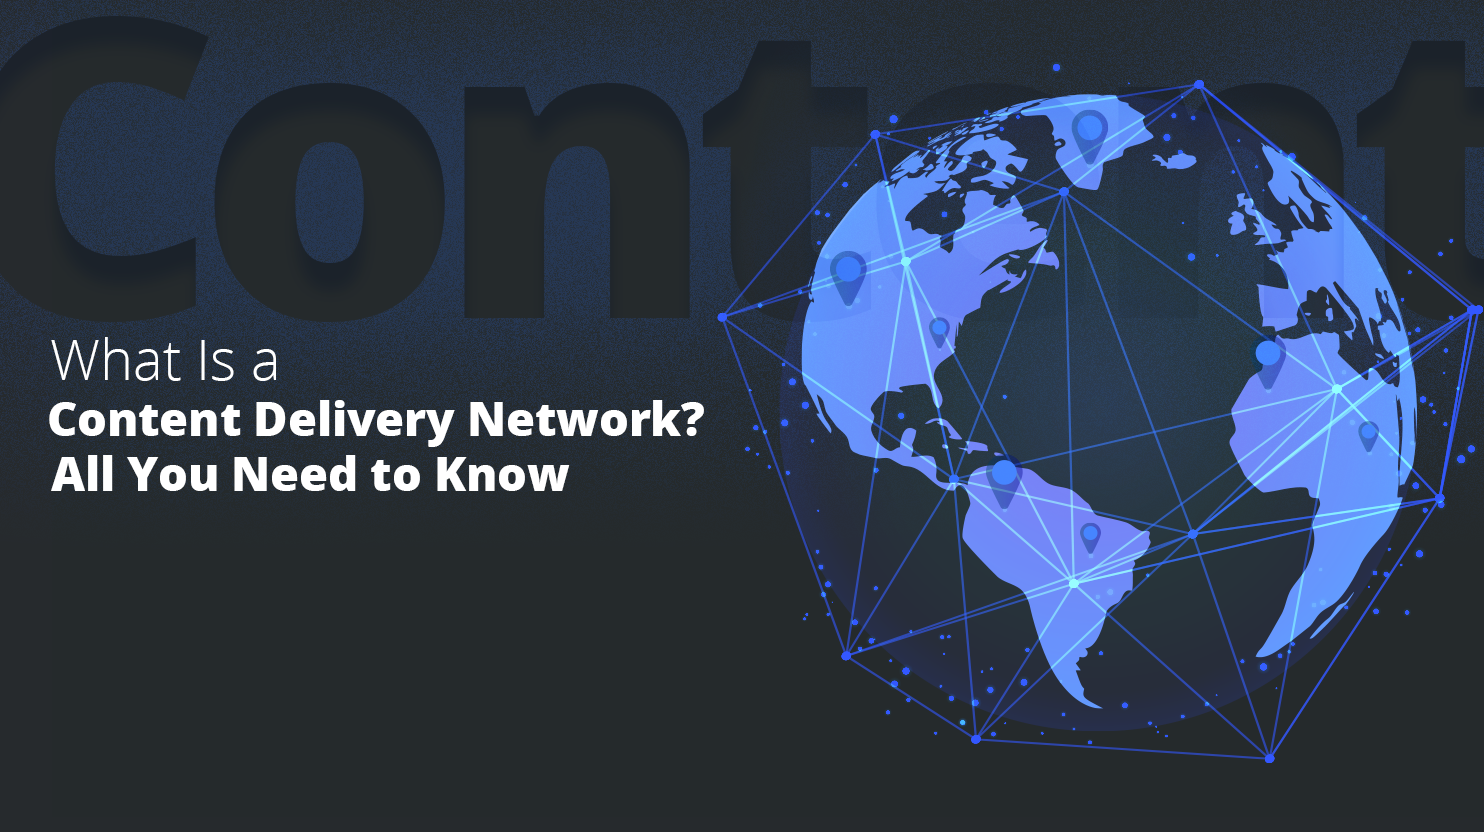 globe next to it it says: what is a content delivery network? all you need to know